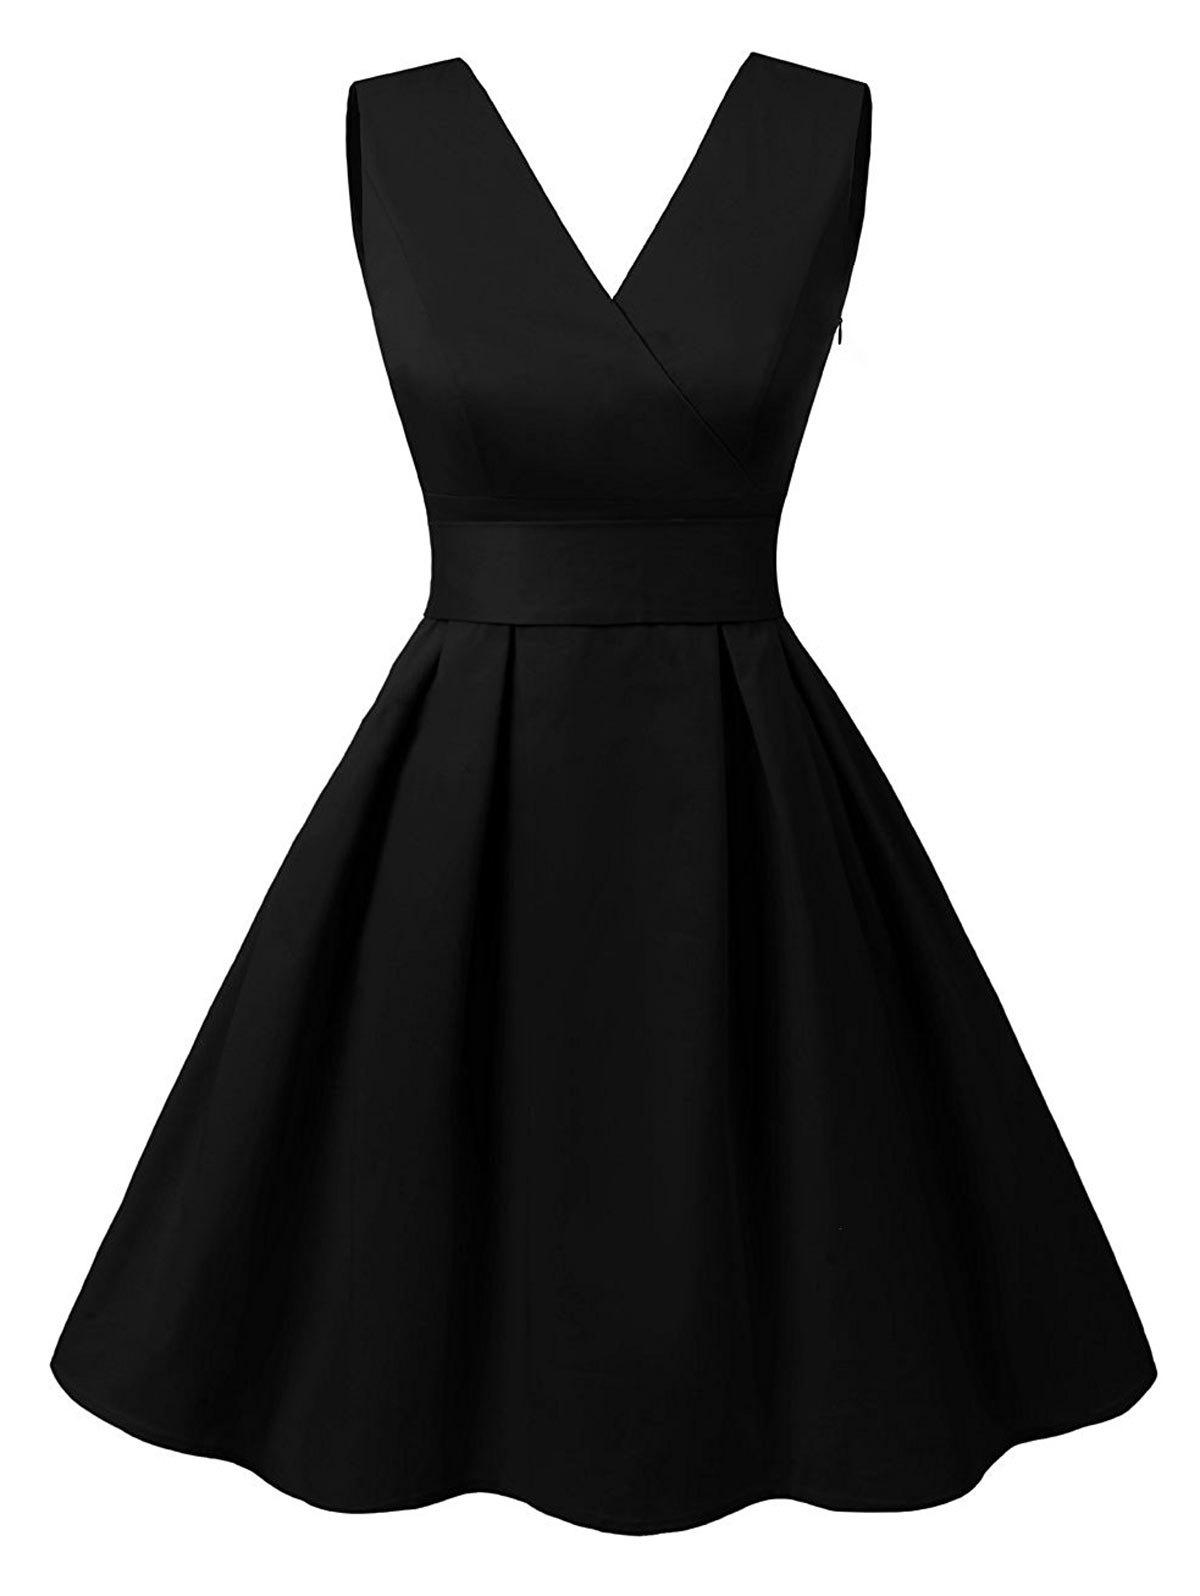 Cut Out V Neck Vintage Pin Up DressWOMEN<br><br>Size: XL; Color: BLACK; Style: Vintage; Material: Cotton,Polyester; Silhouette: A-Line; Dresses Length: Knee-Length; Neckline: V-Neck; Sleeve Length: Sleeveless; Embellishment: Cut Out; Pattern Type: Solid; With Belt: Yes; Season: Summer; Weight: 0.3800kg; Package Contents: 1 x Dress  1 x Belt;